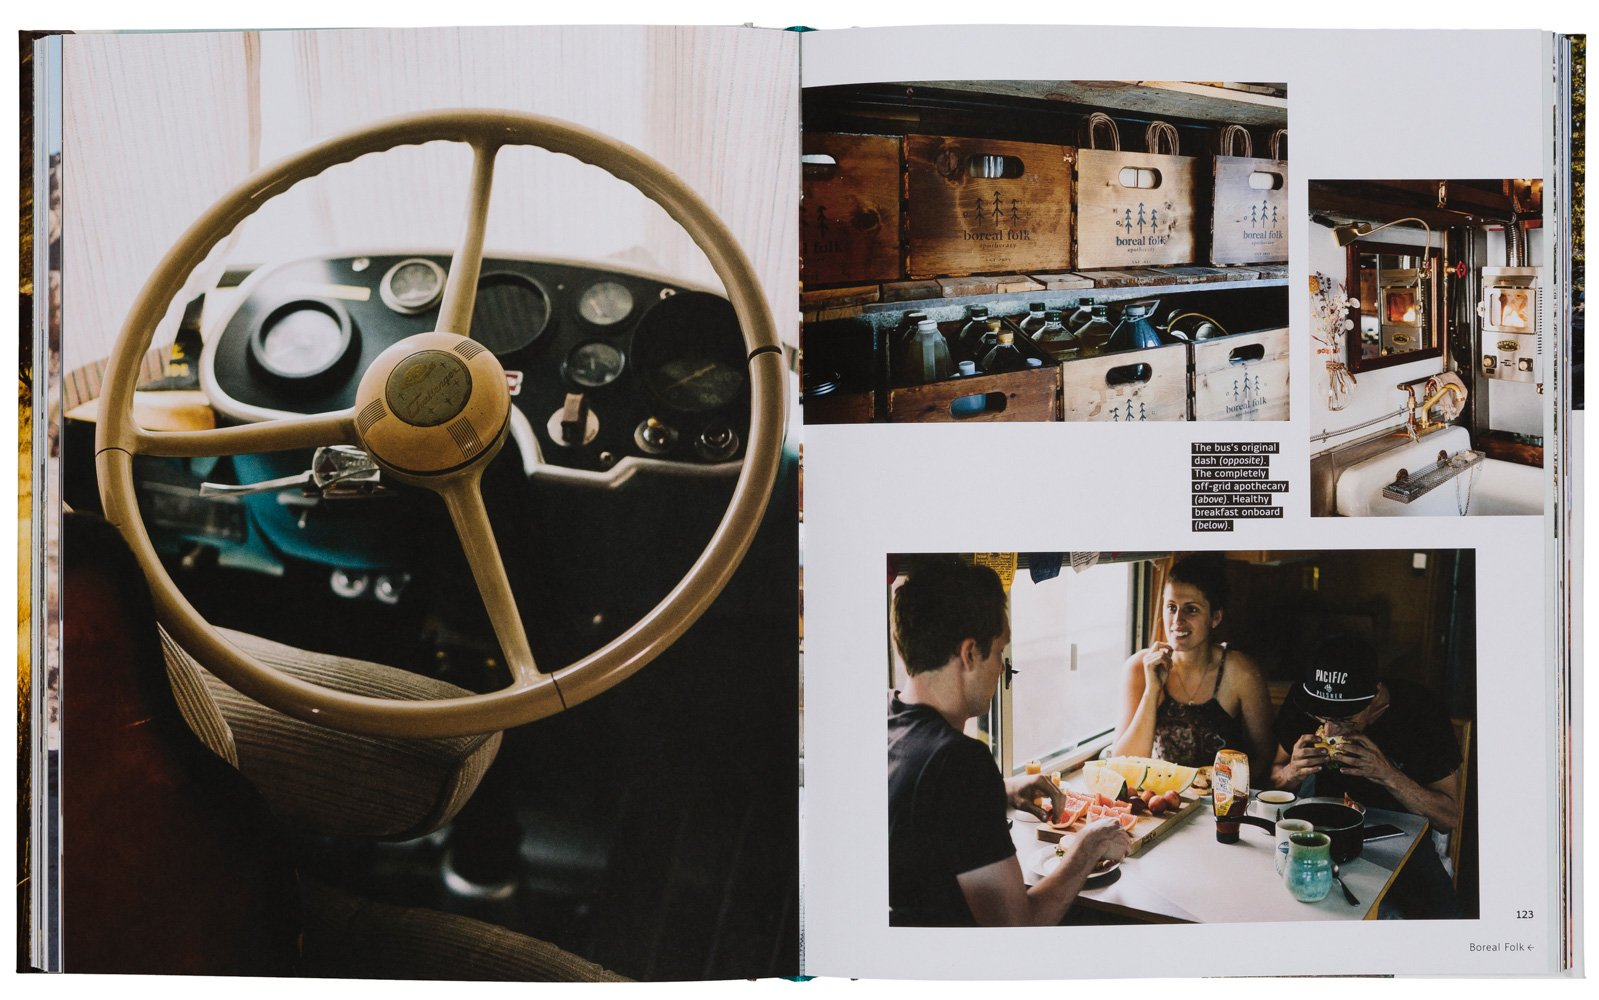 Hit The Road p123